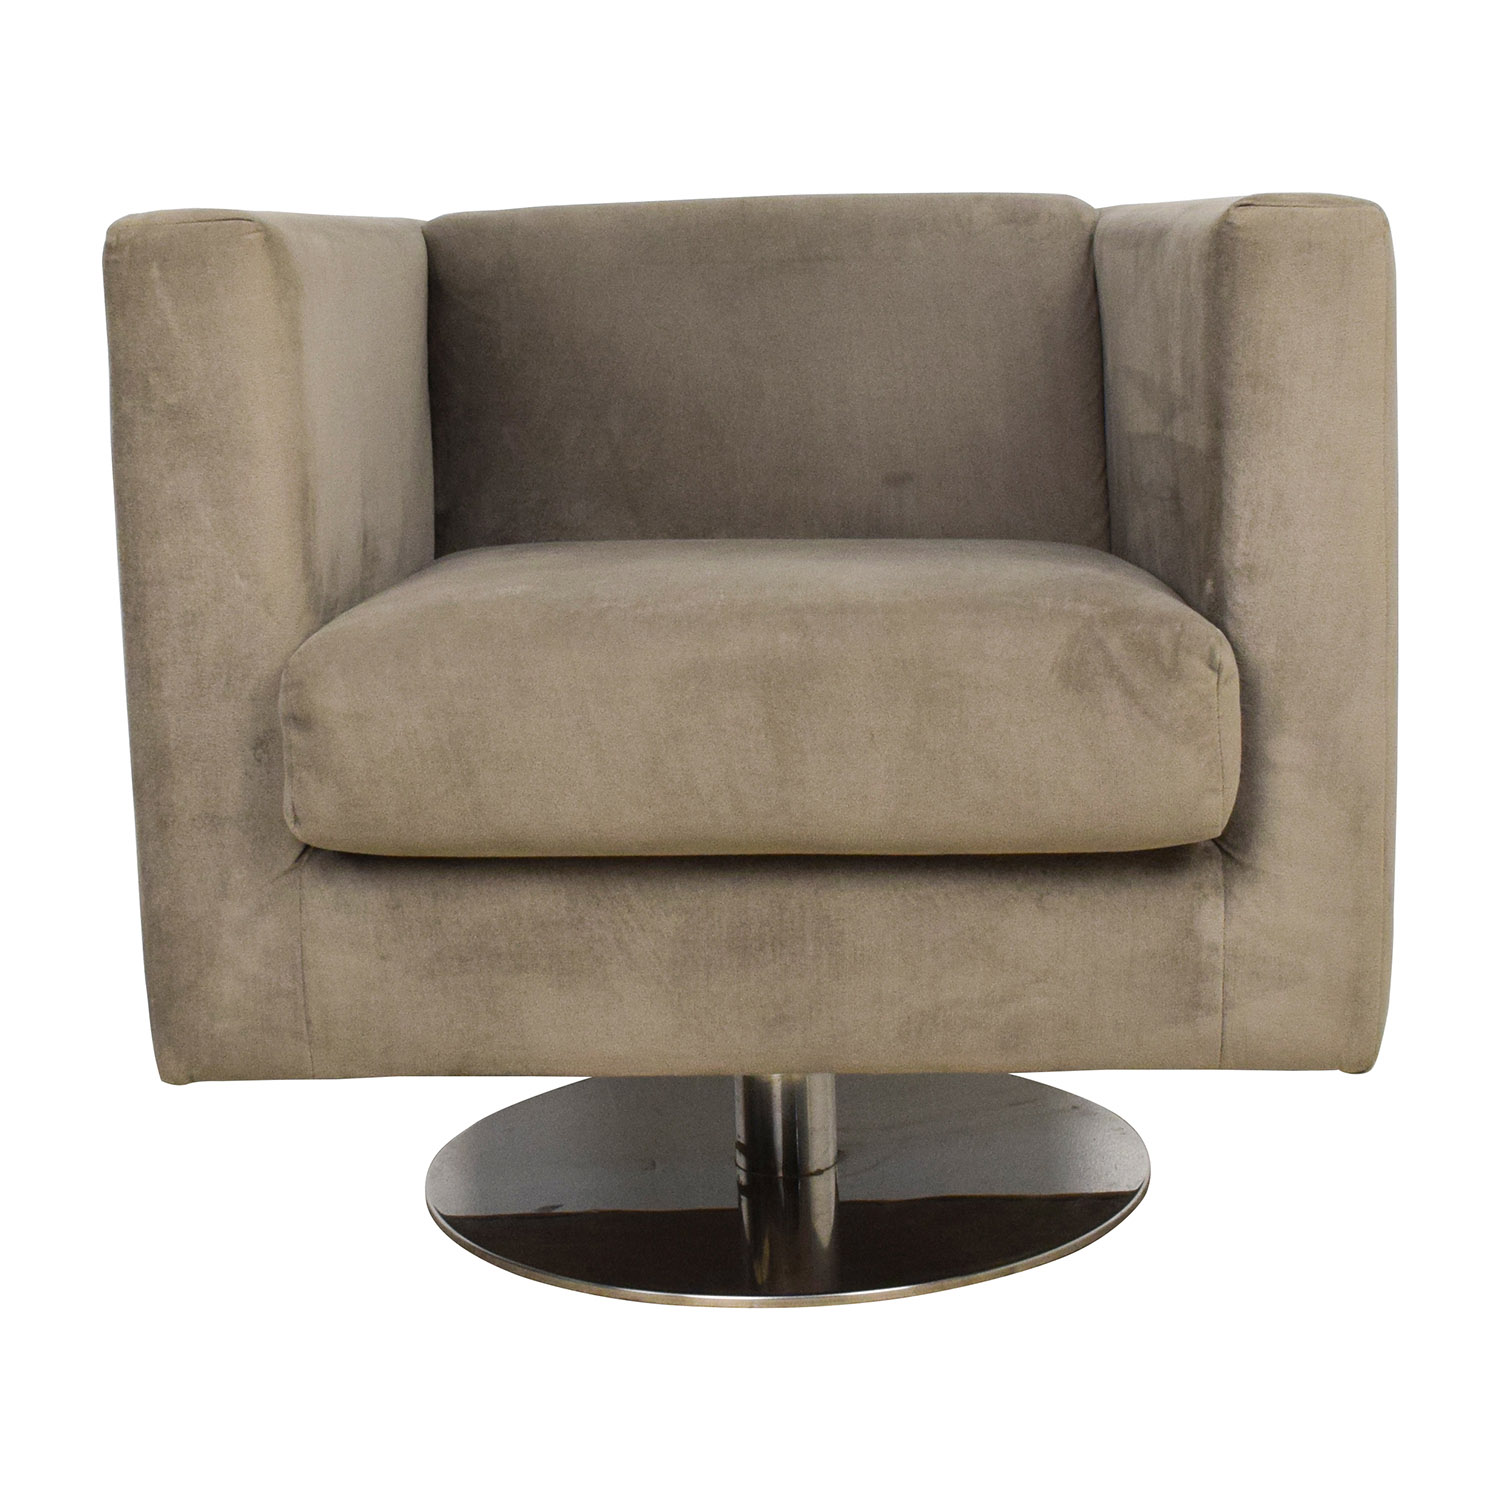 Rowe Grey Swivel Chair sale